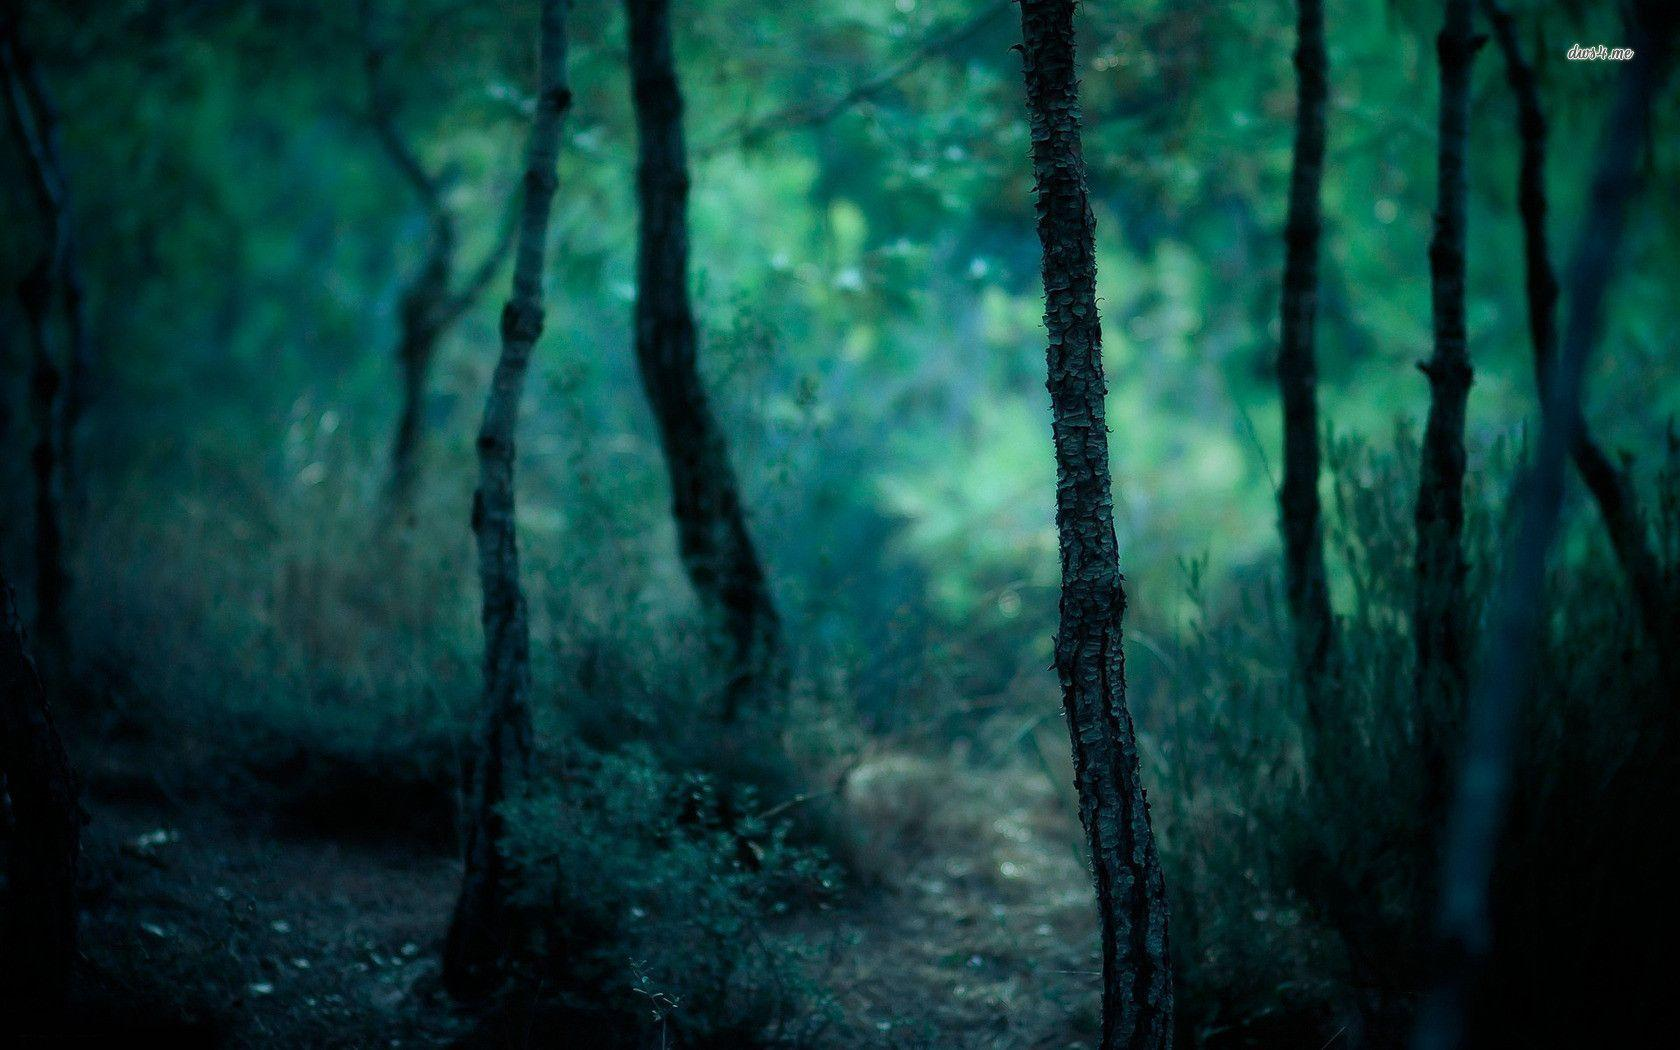 Dark Trees Hd Wallpapers: Dark Forest Wallpapers